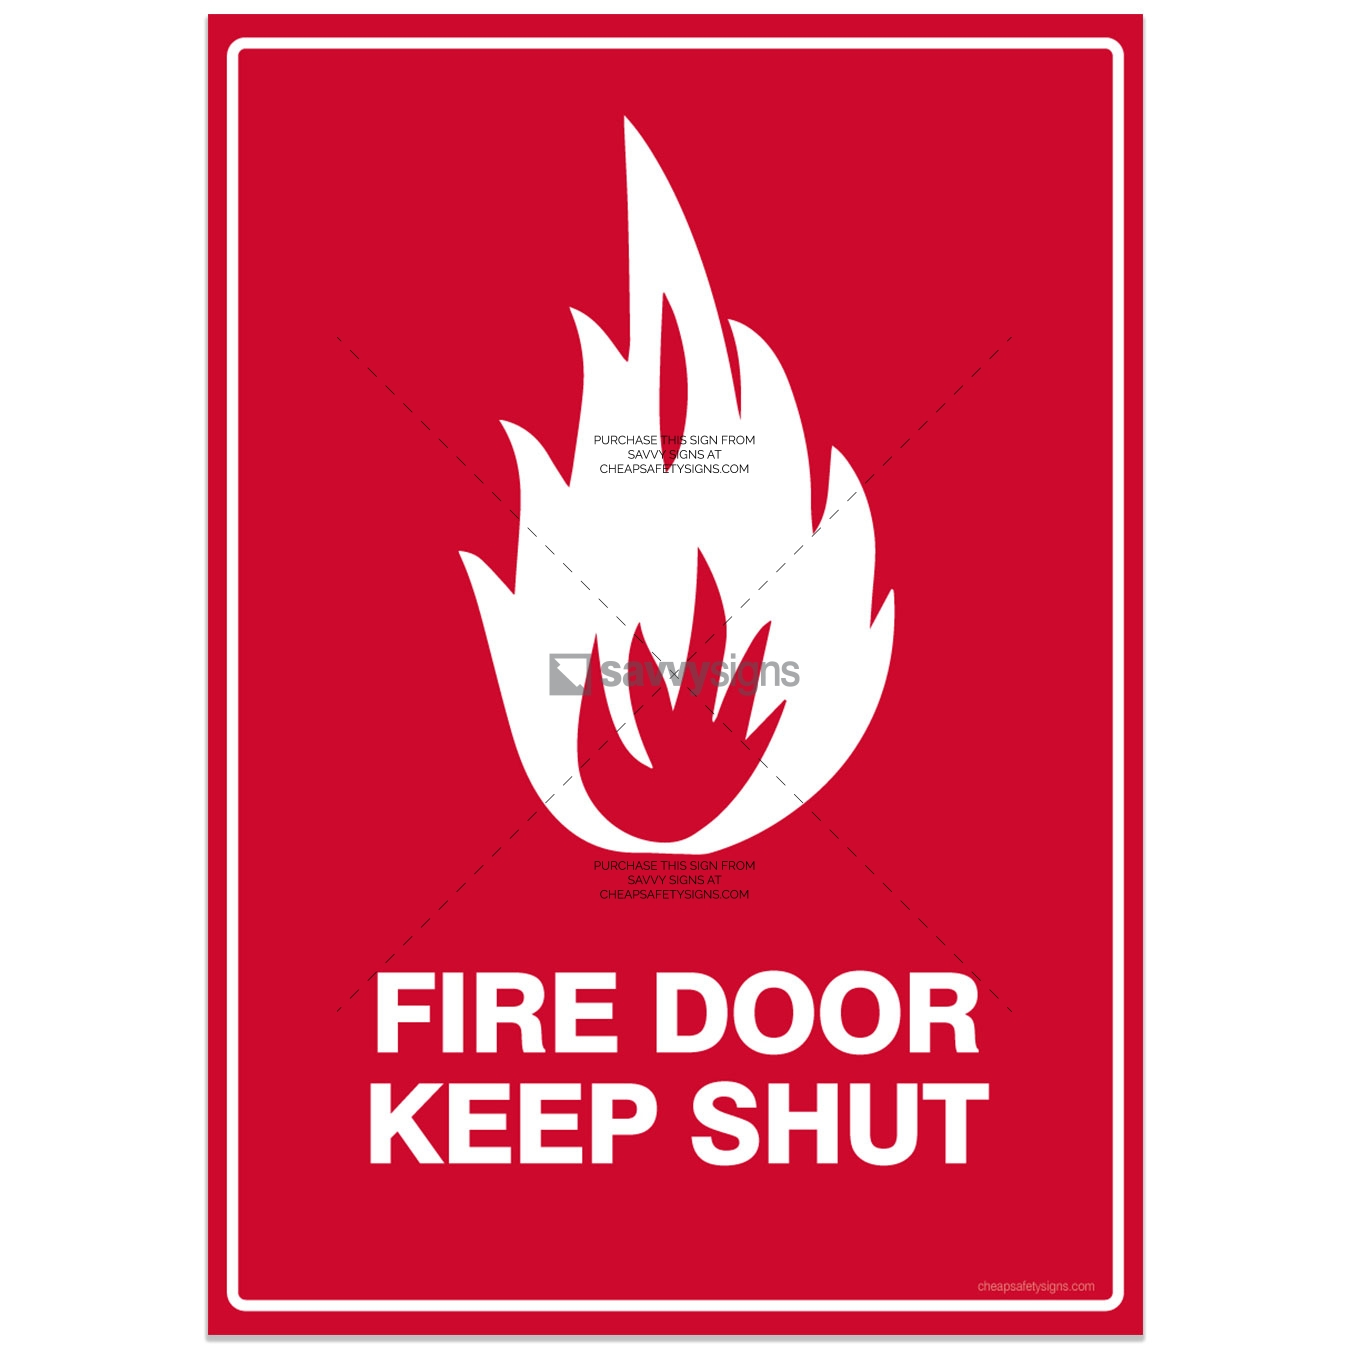 SSFIR3033-FIRE-SAFETY-Workplace-Safety-Signs_Savvy-Signs_v3